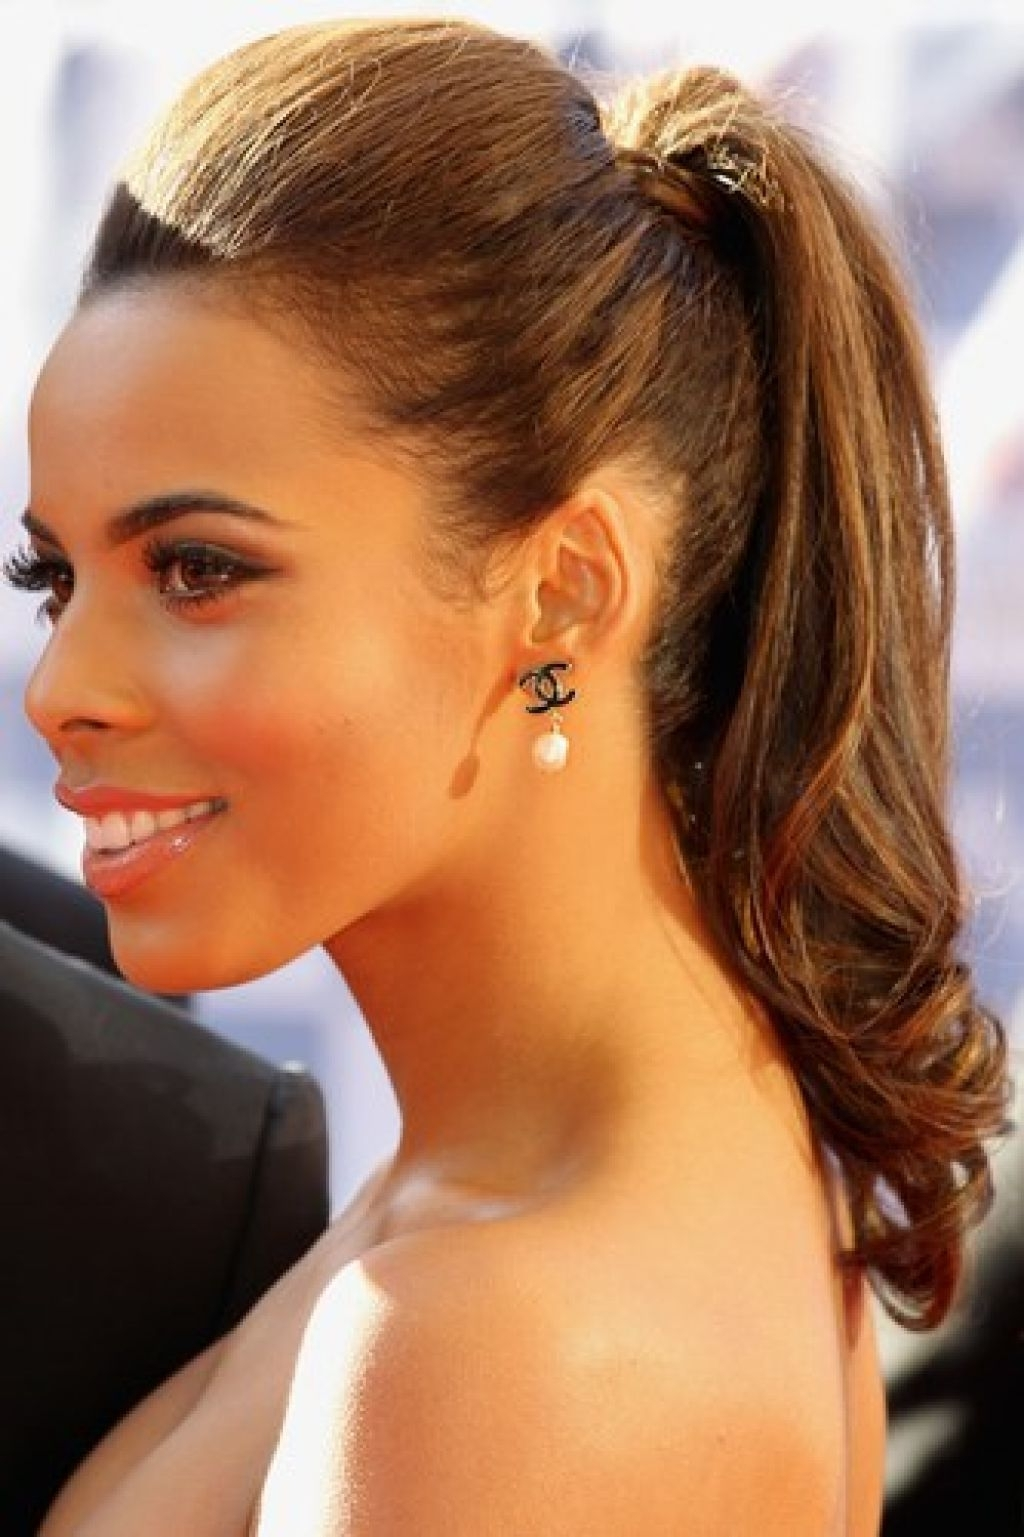 Wedding Hairstyles Ideas: Pulled Back Low Updo Wedding Guest For Preferred Tied Up Wedding Hairstyles For Long Hair (View 14 of 15)